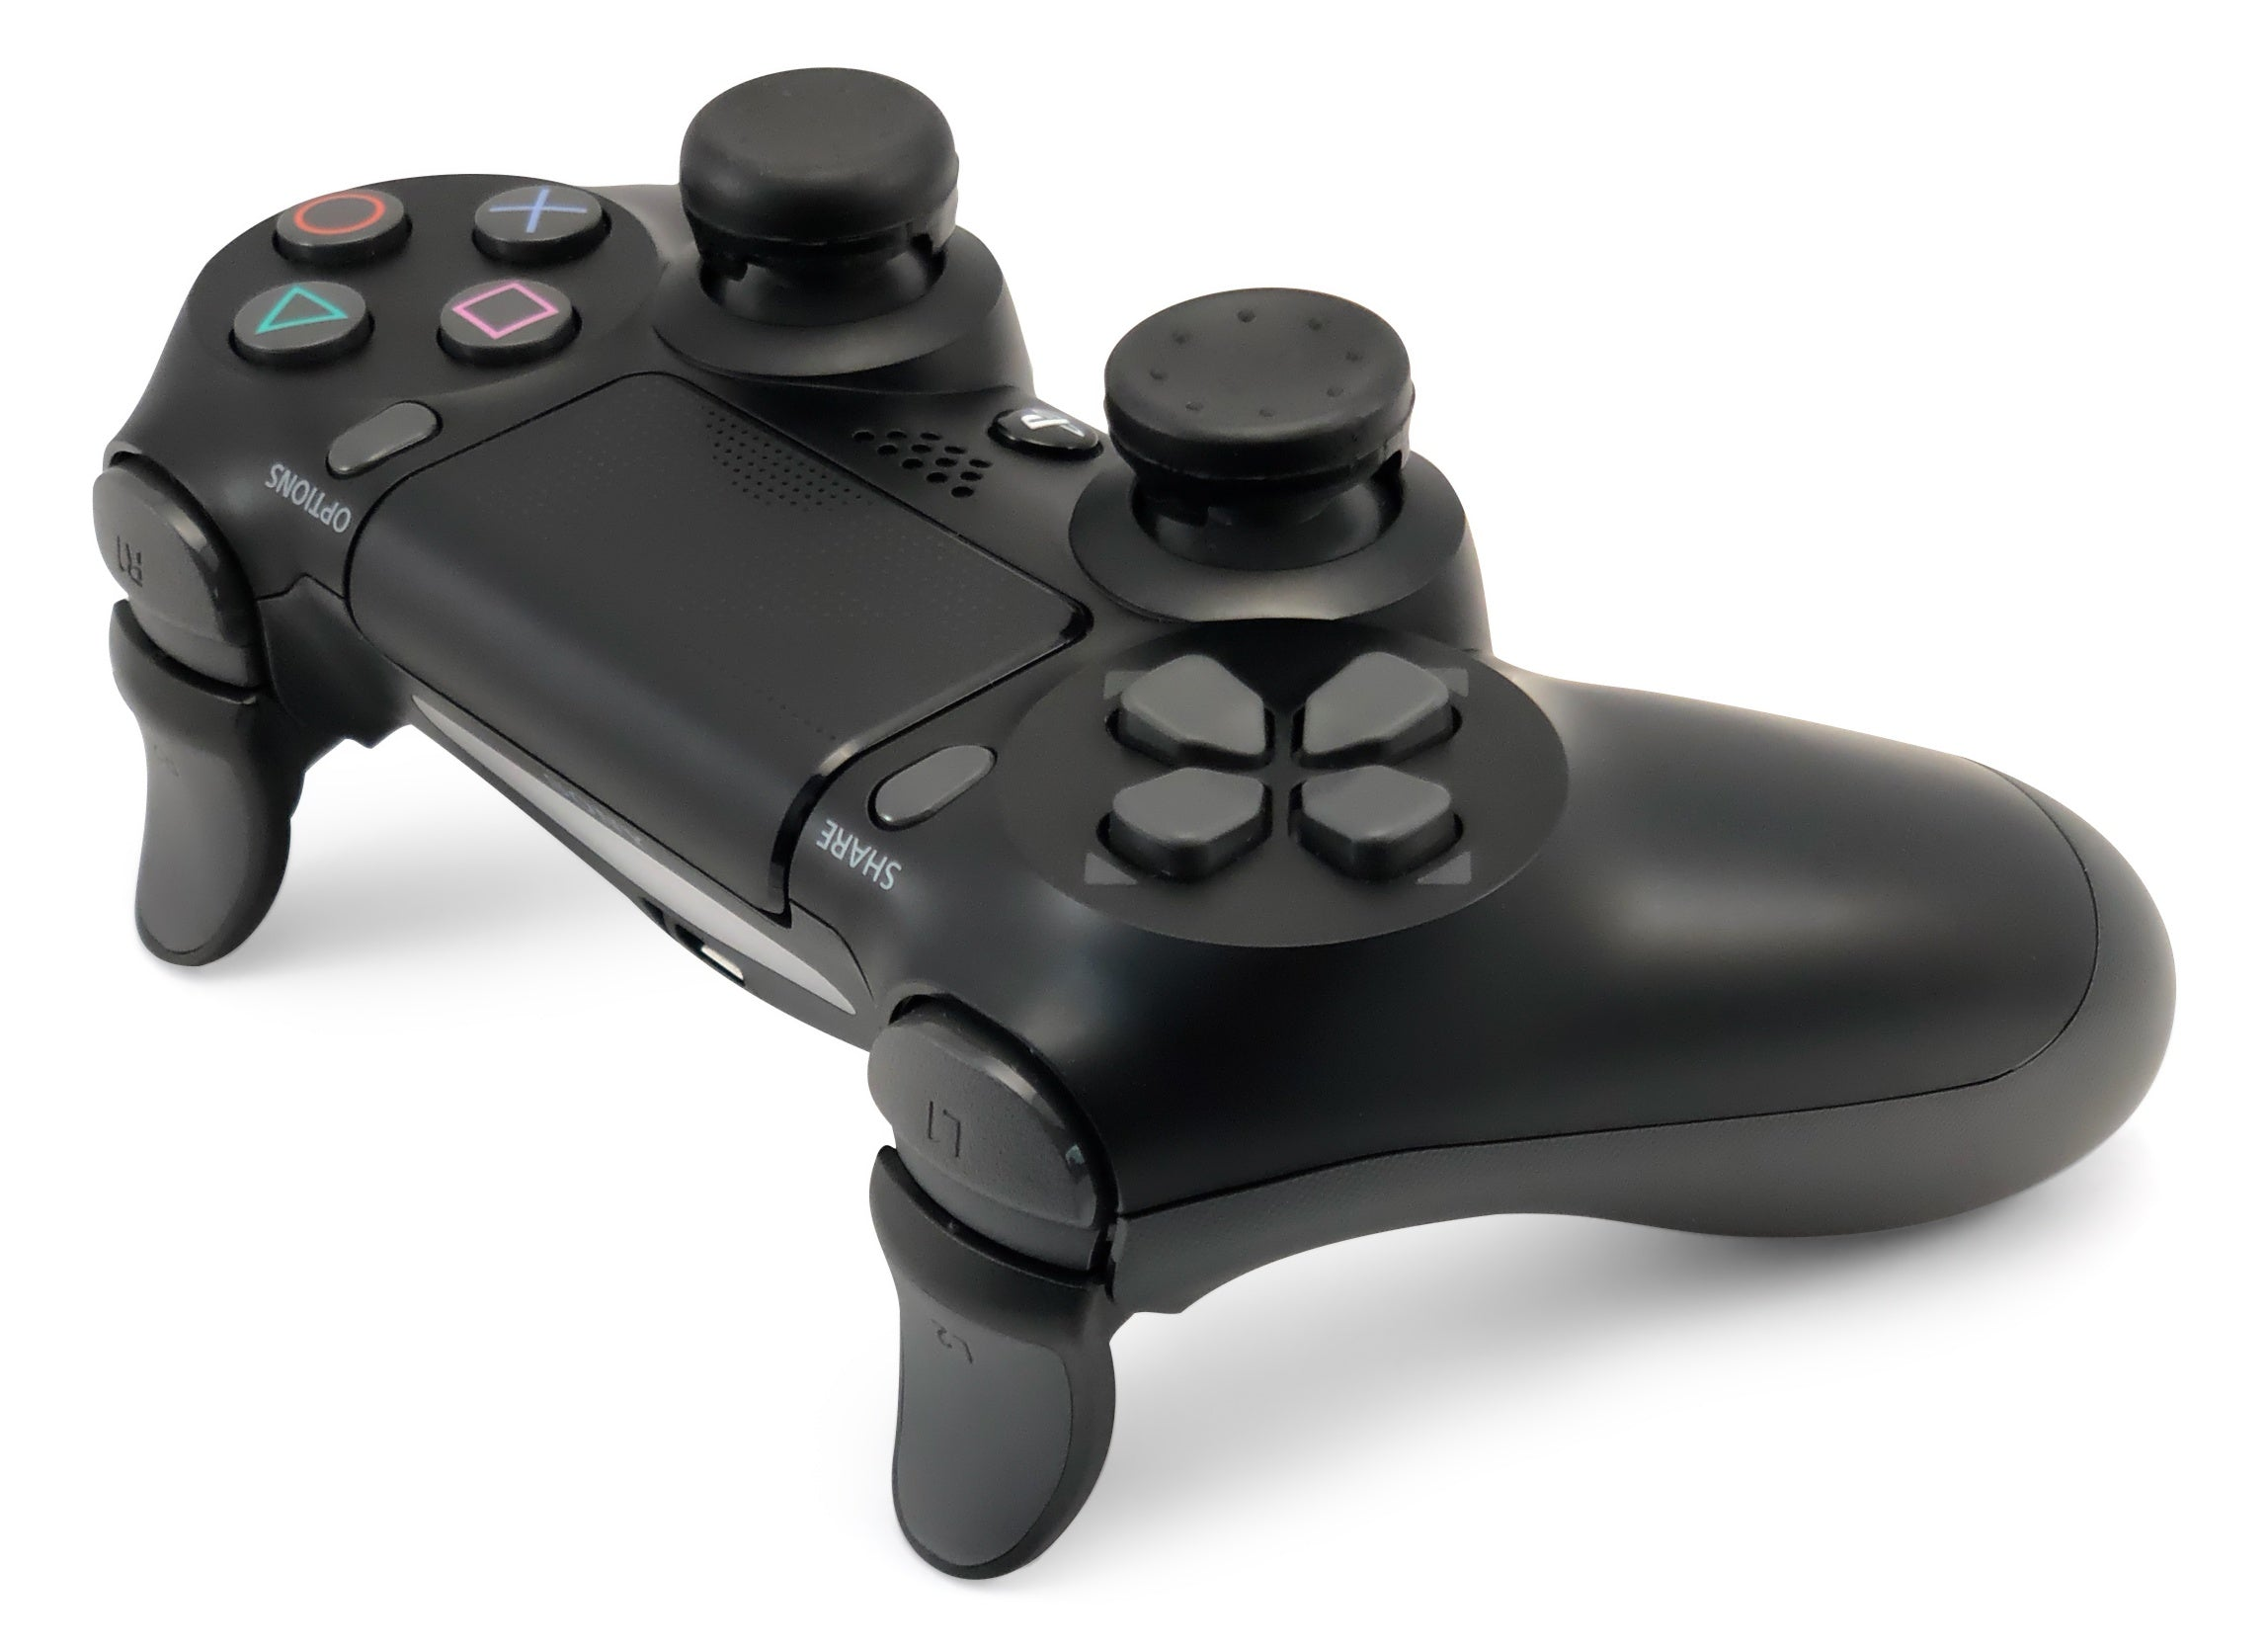 Weapons of Mass Destruction - PS4 Performance Triggers and Precision Thumbsticks - 1 Medium Stem & 1 Short Stem Stick - Black